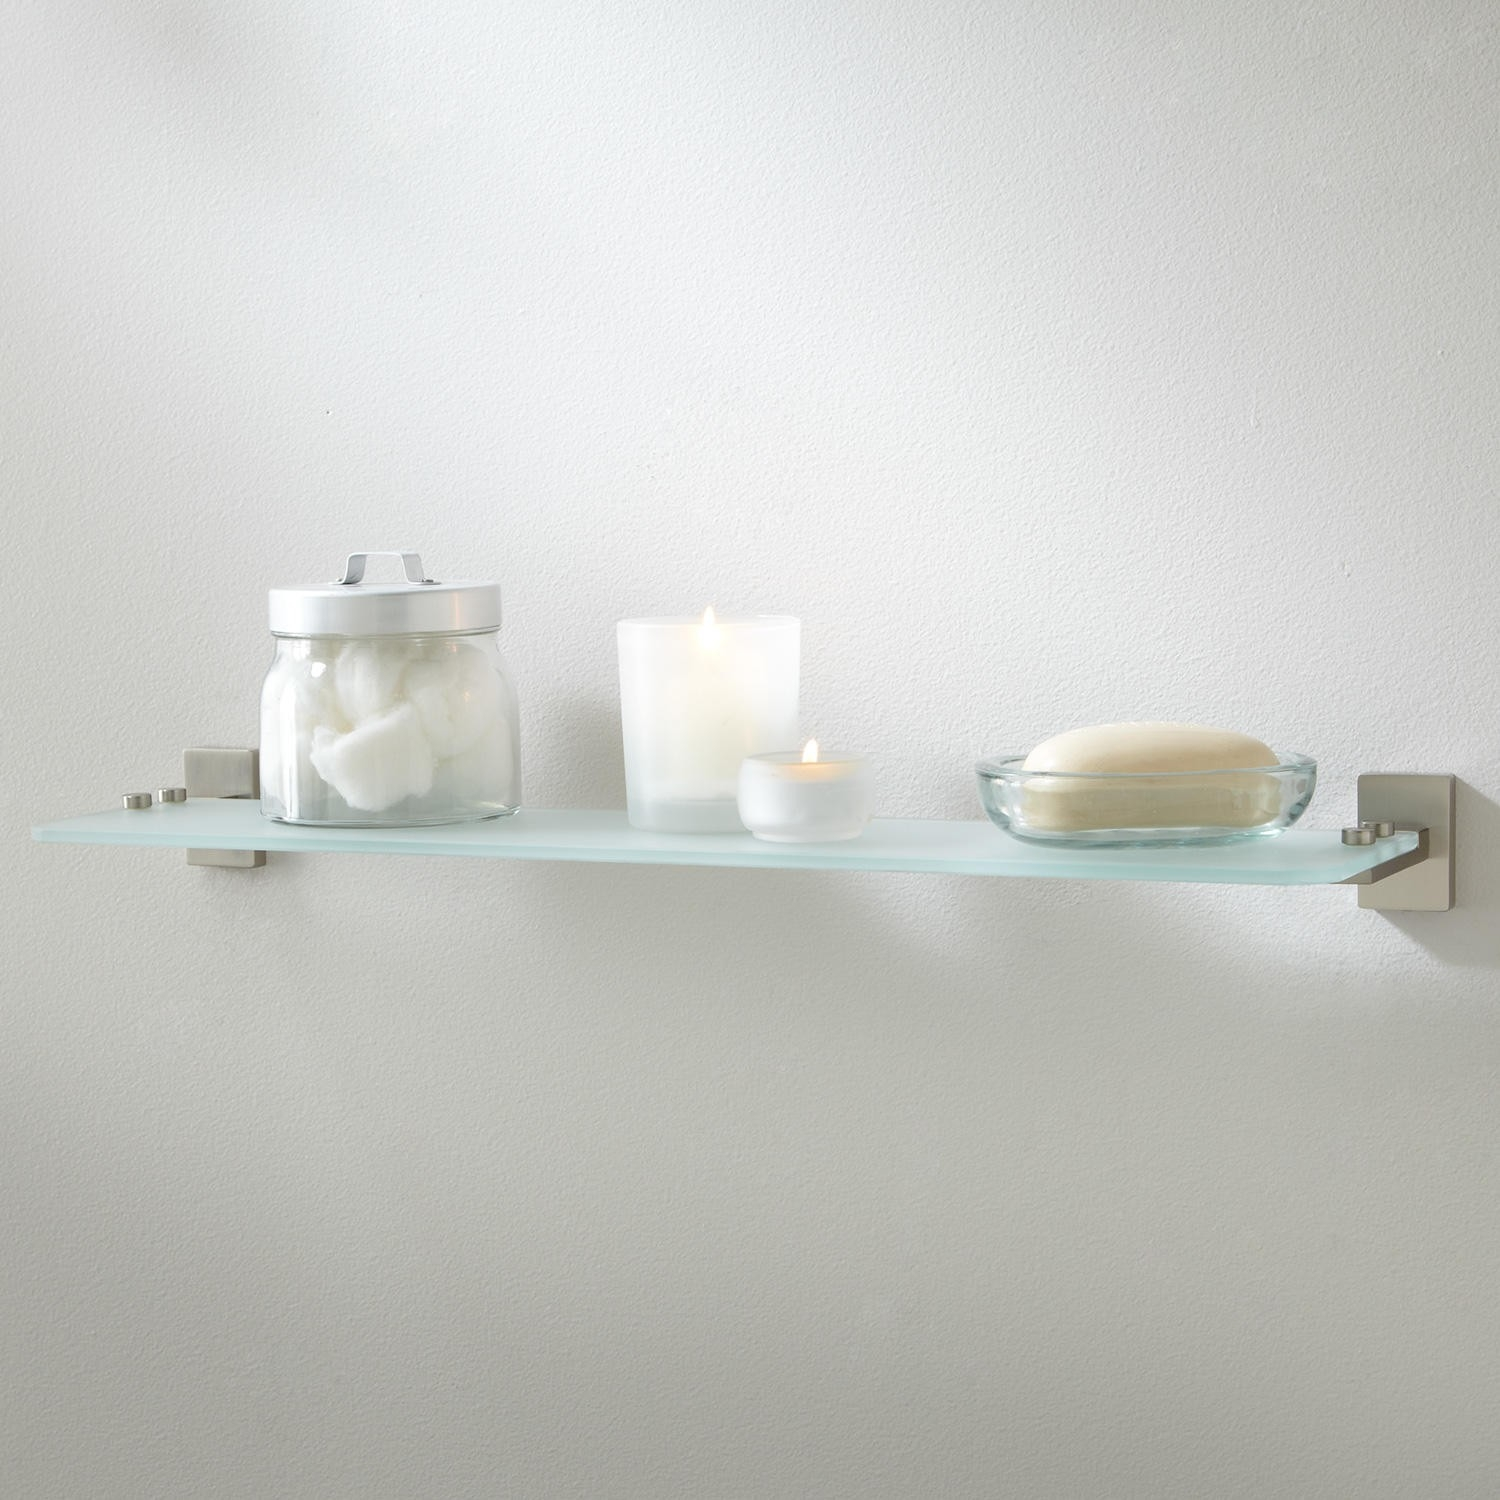 Helsinki Tempered Glass Shelf Bathroom Intended For Frosted Glass Shelves (Image 11 of 15)